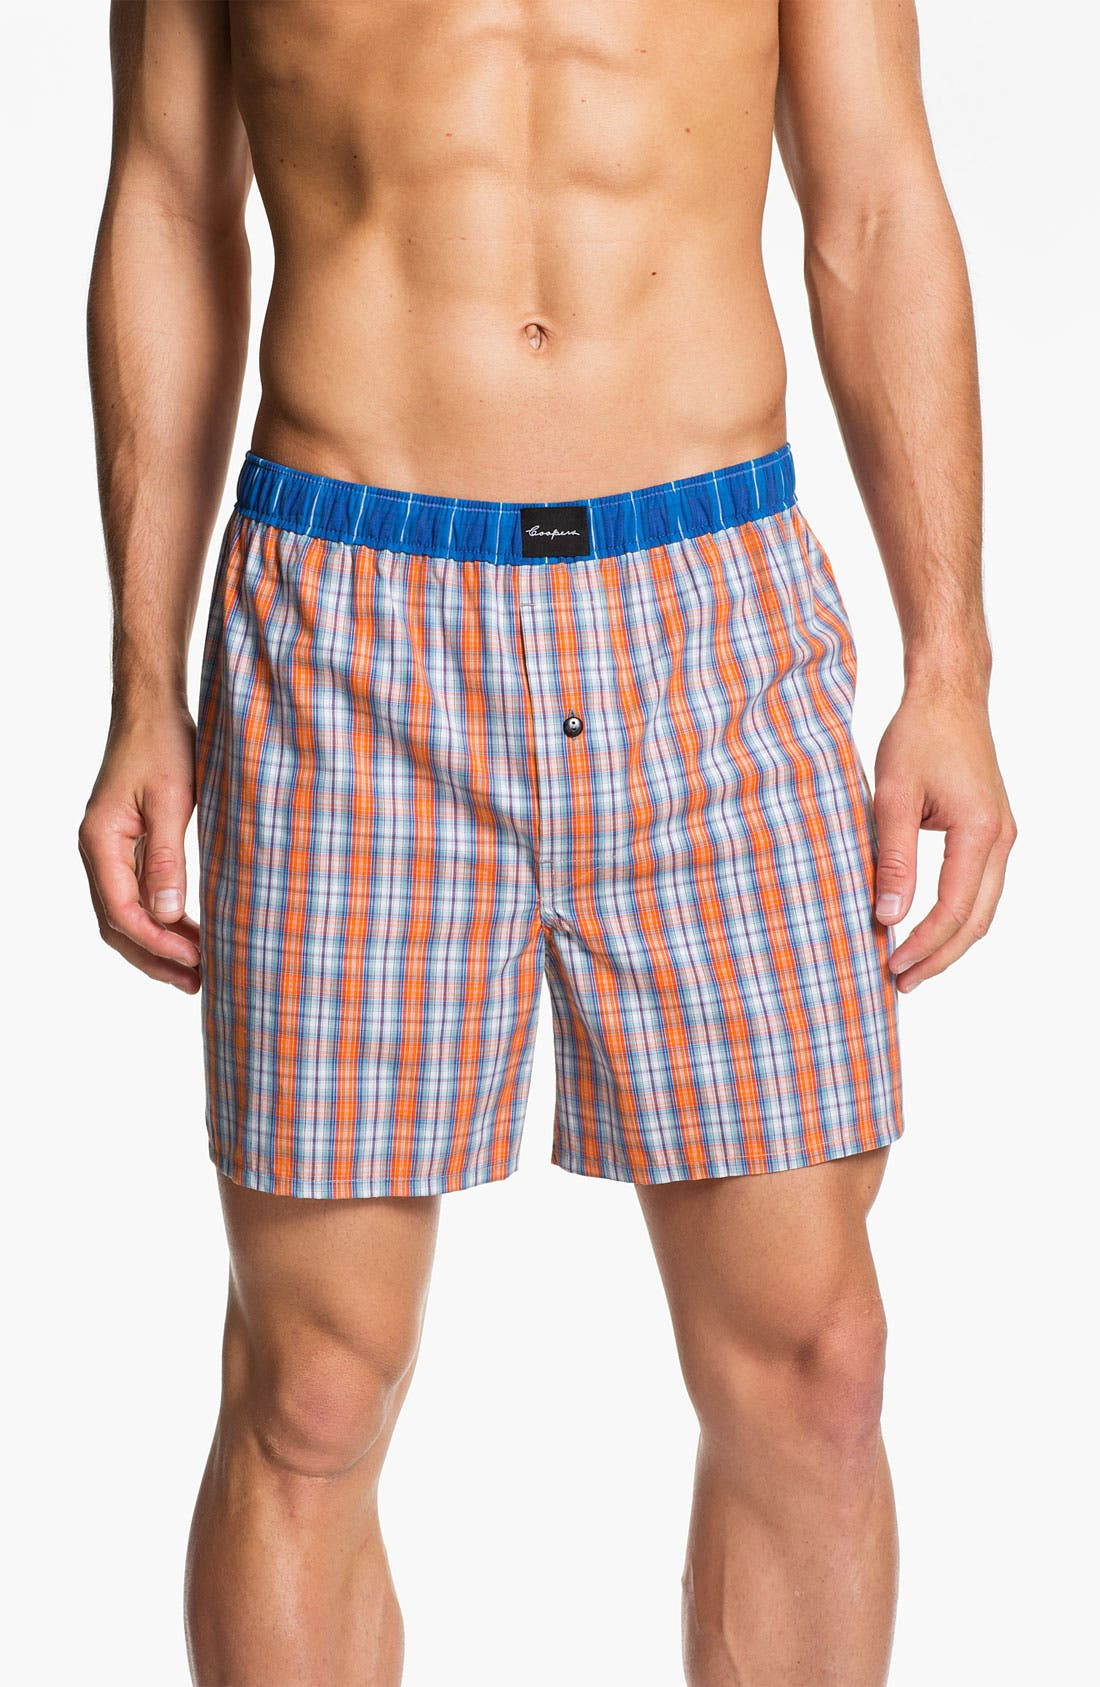 Main Image - Coopers by Jockey® Woven Boxer Shorts